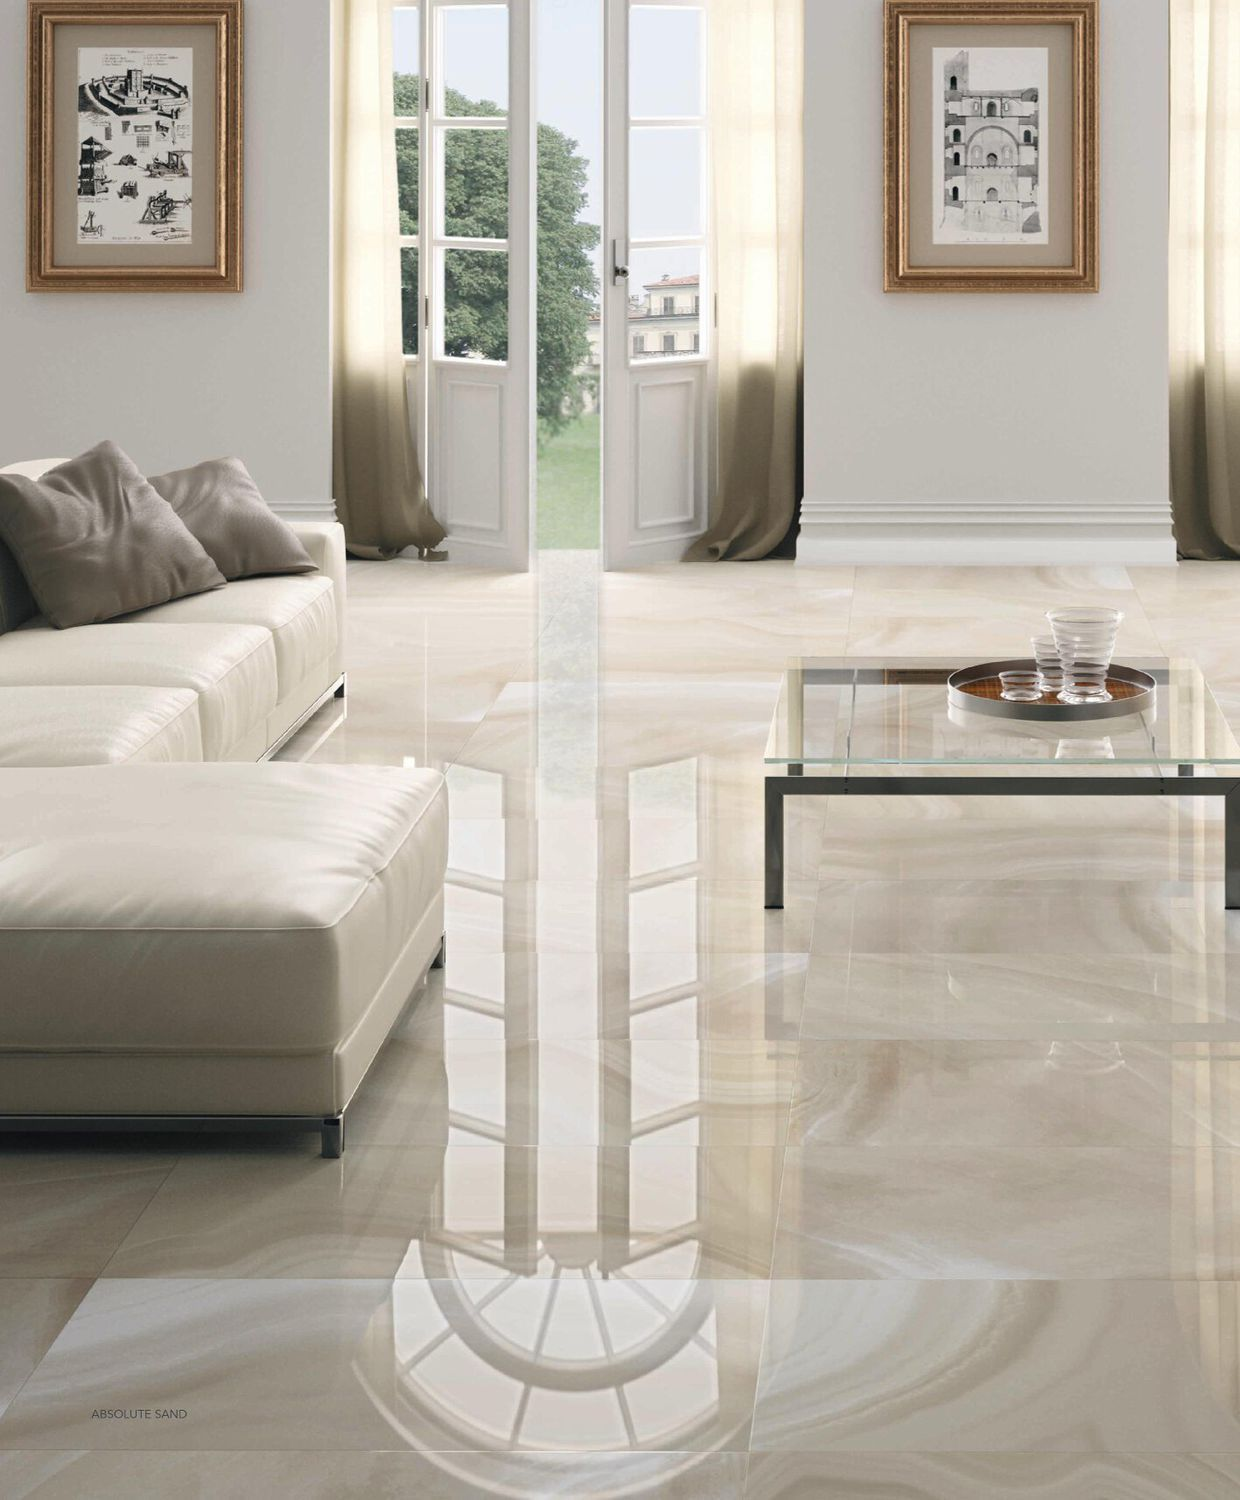 Living Room Floor Tiles Design Enchanting Floor Tile  Porcelain Stoneware  Highgloss  Stone Look High Design Ideas